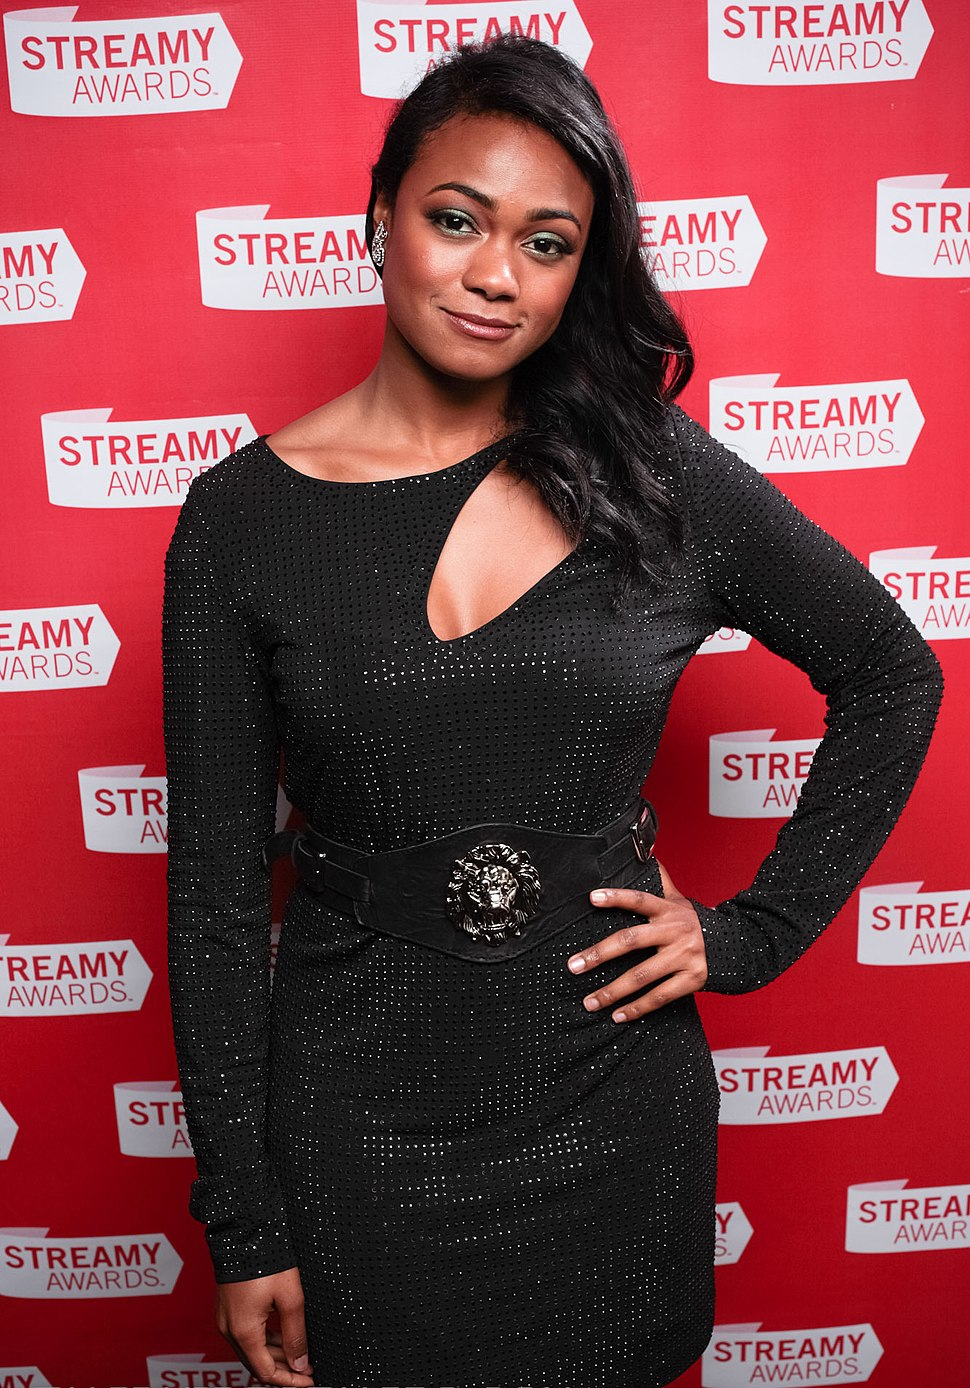 Streamy Awards Photo 1302 (4513297565)